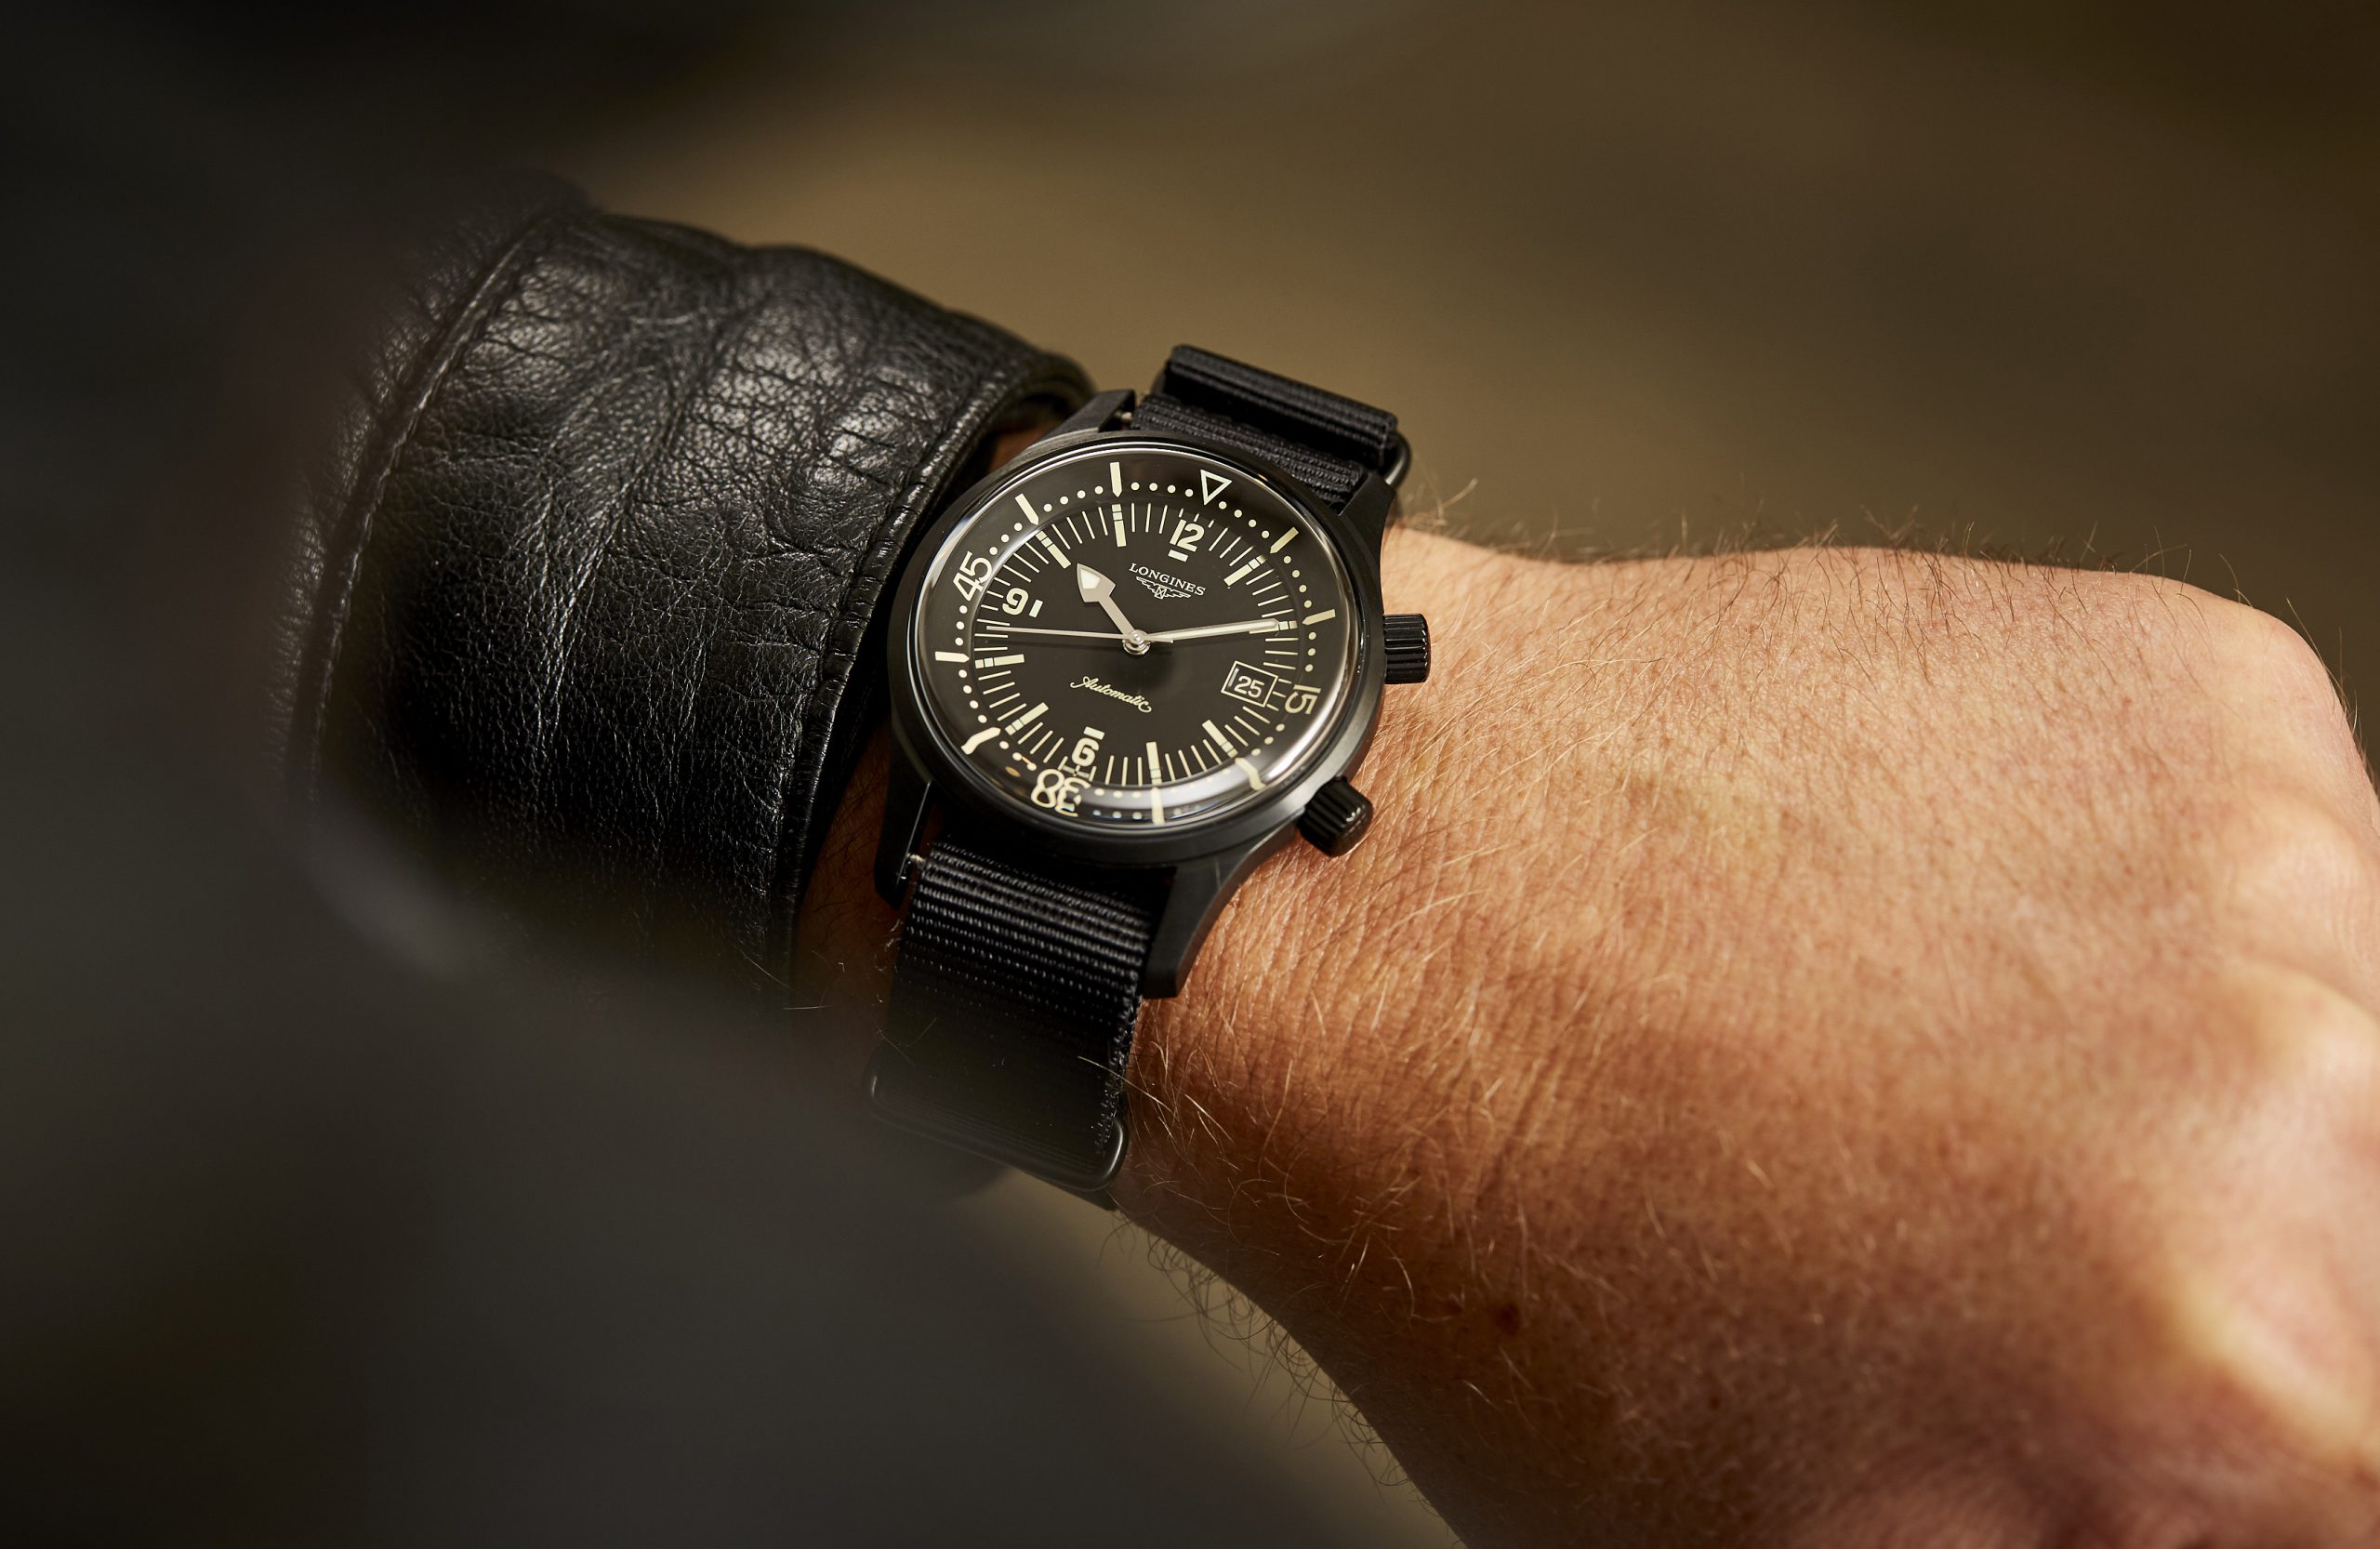 The Australian launch of the Longines Legend Diver at Time and Tide HQ in Melbourne was our blackest event yet